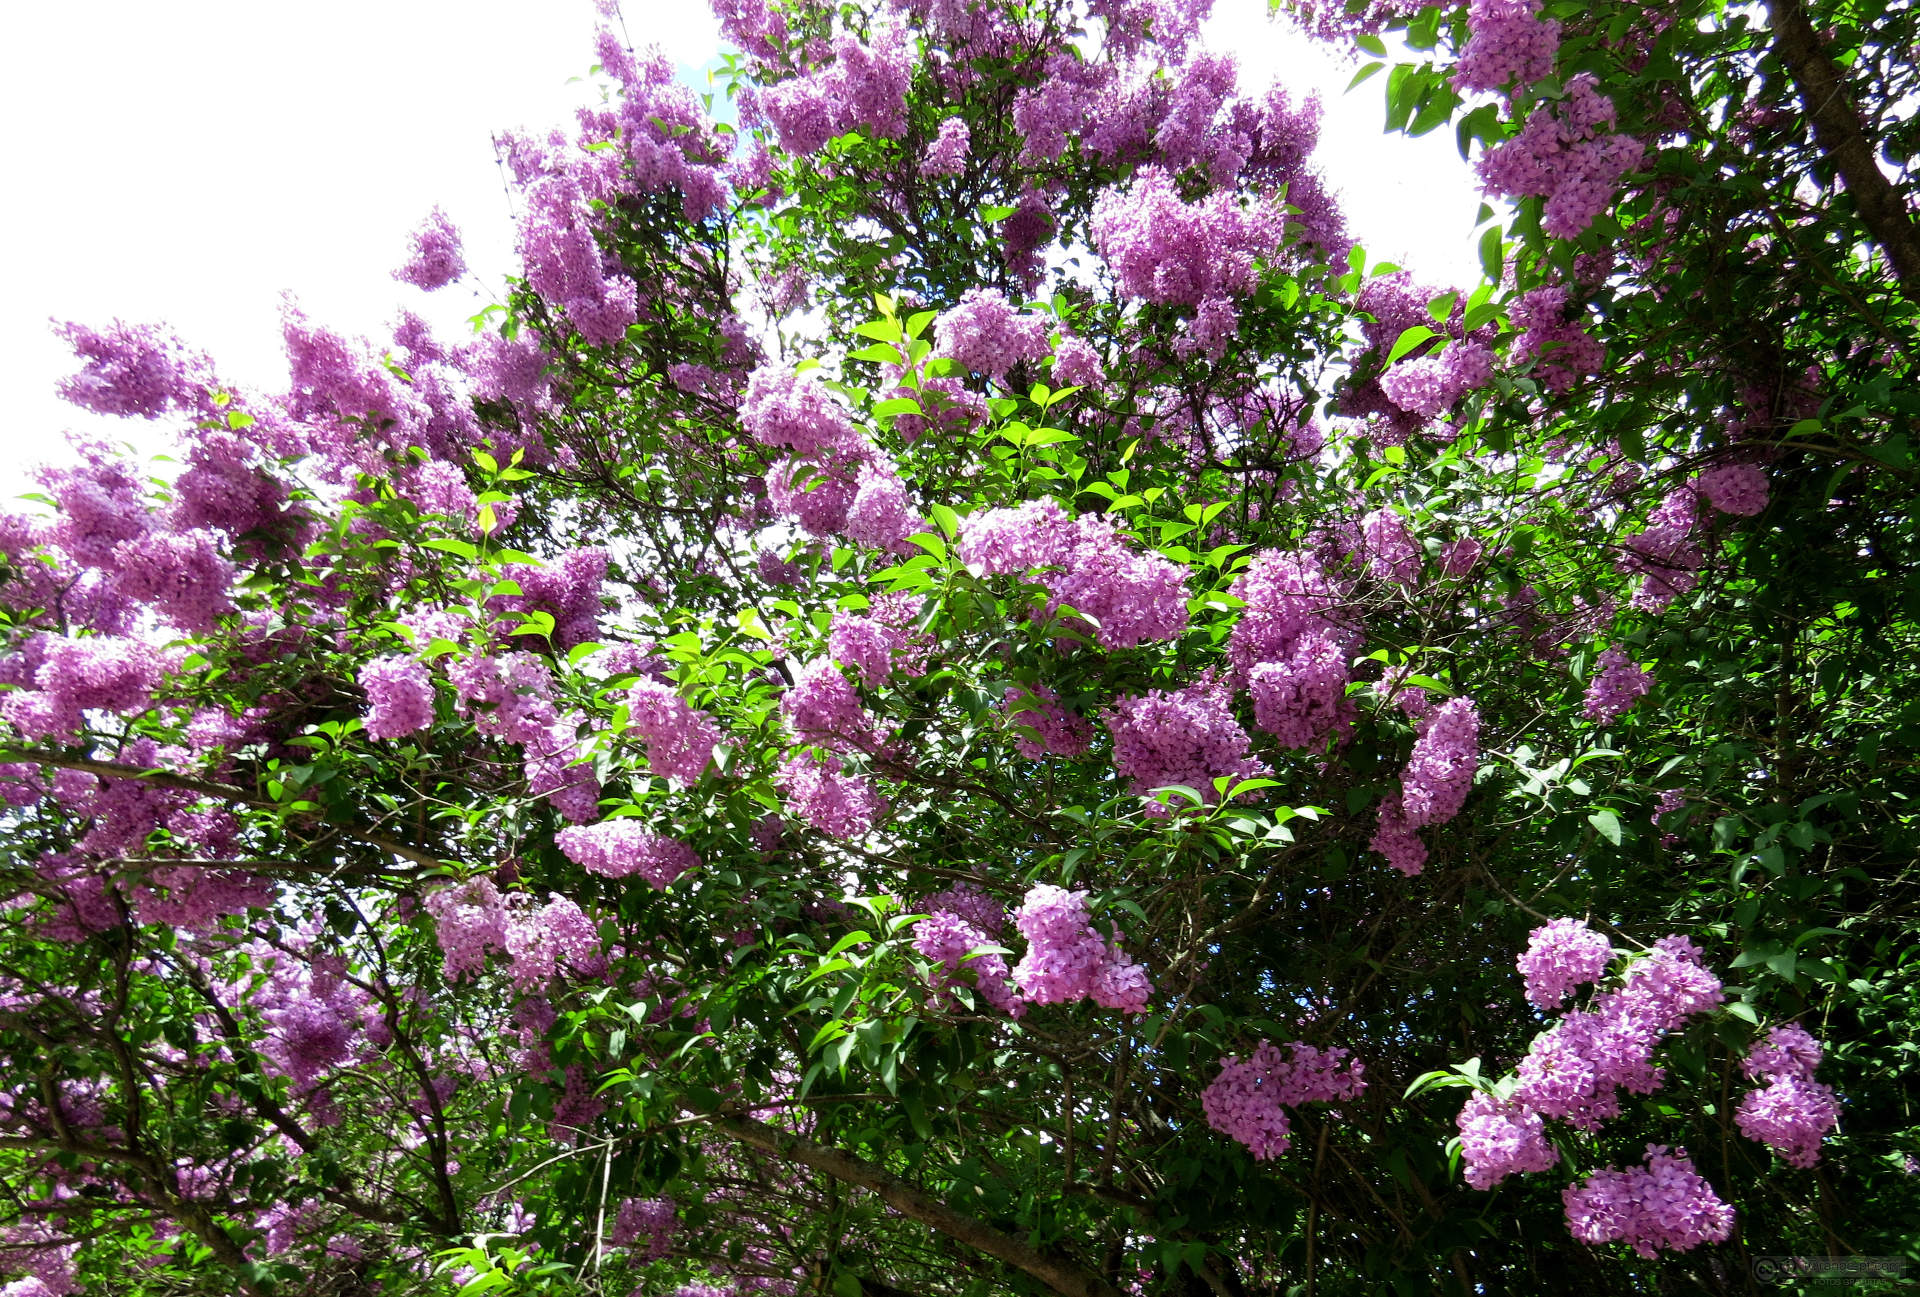 image of lilac bushes in garden